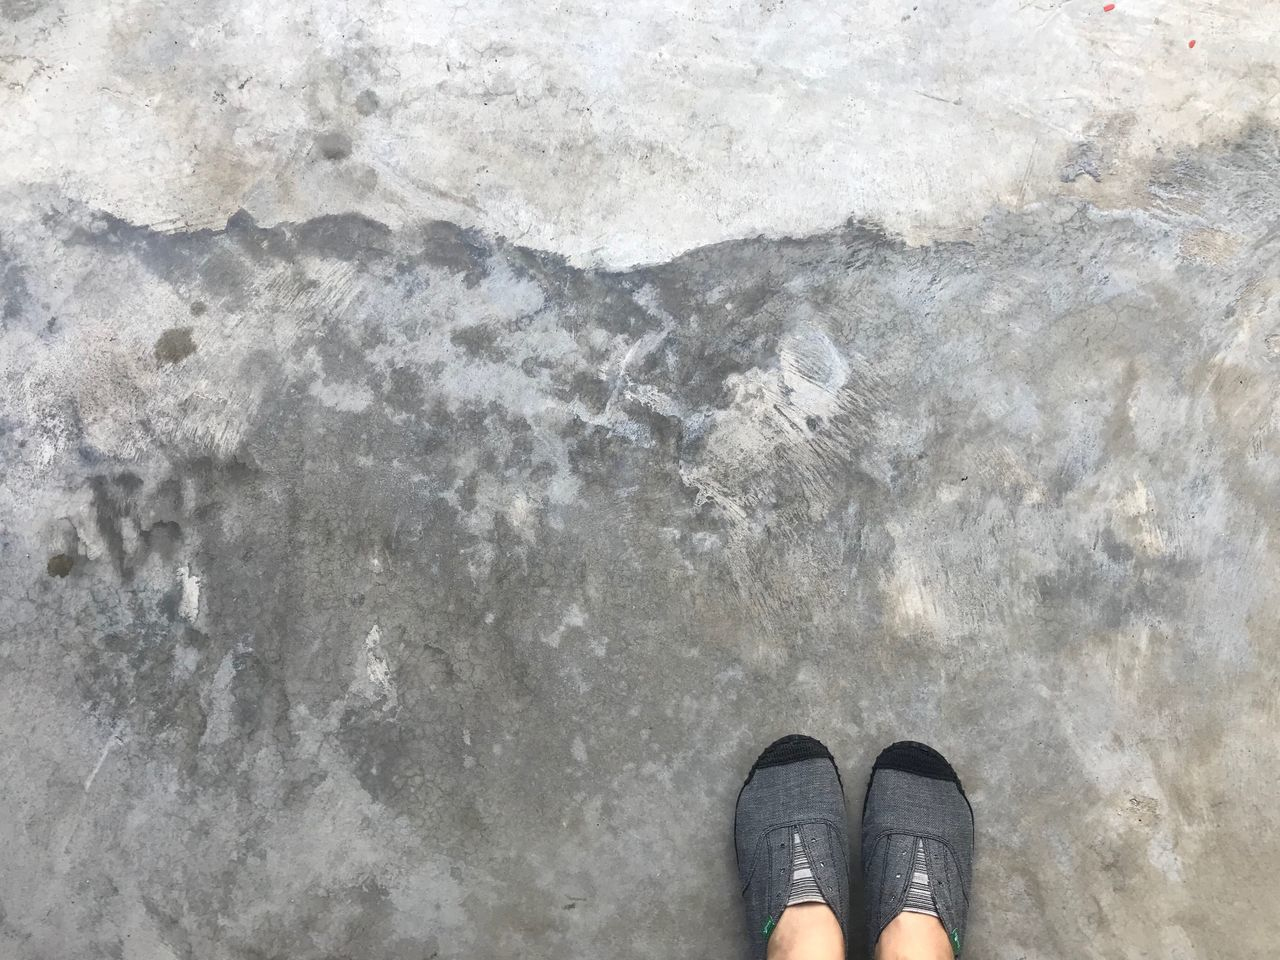 Sanook Sneakers Shoes Low Section Standing Human Leg Personal Perspective Human Body Part One Person Real People Outdoors High Angle View Day Directly Above Lifestyles Cement Floor Adult People